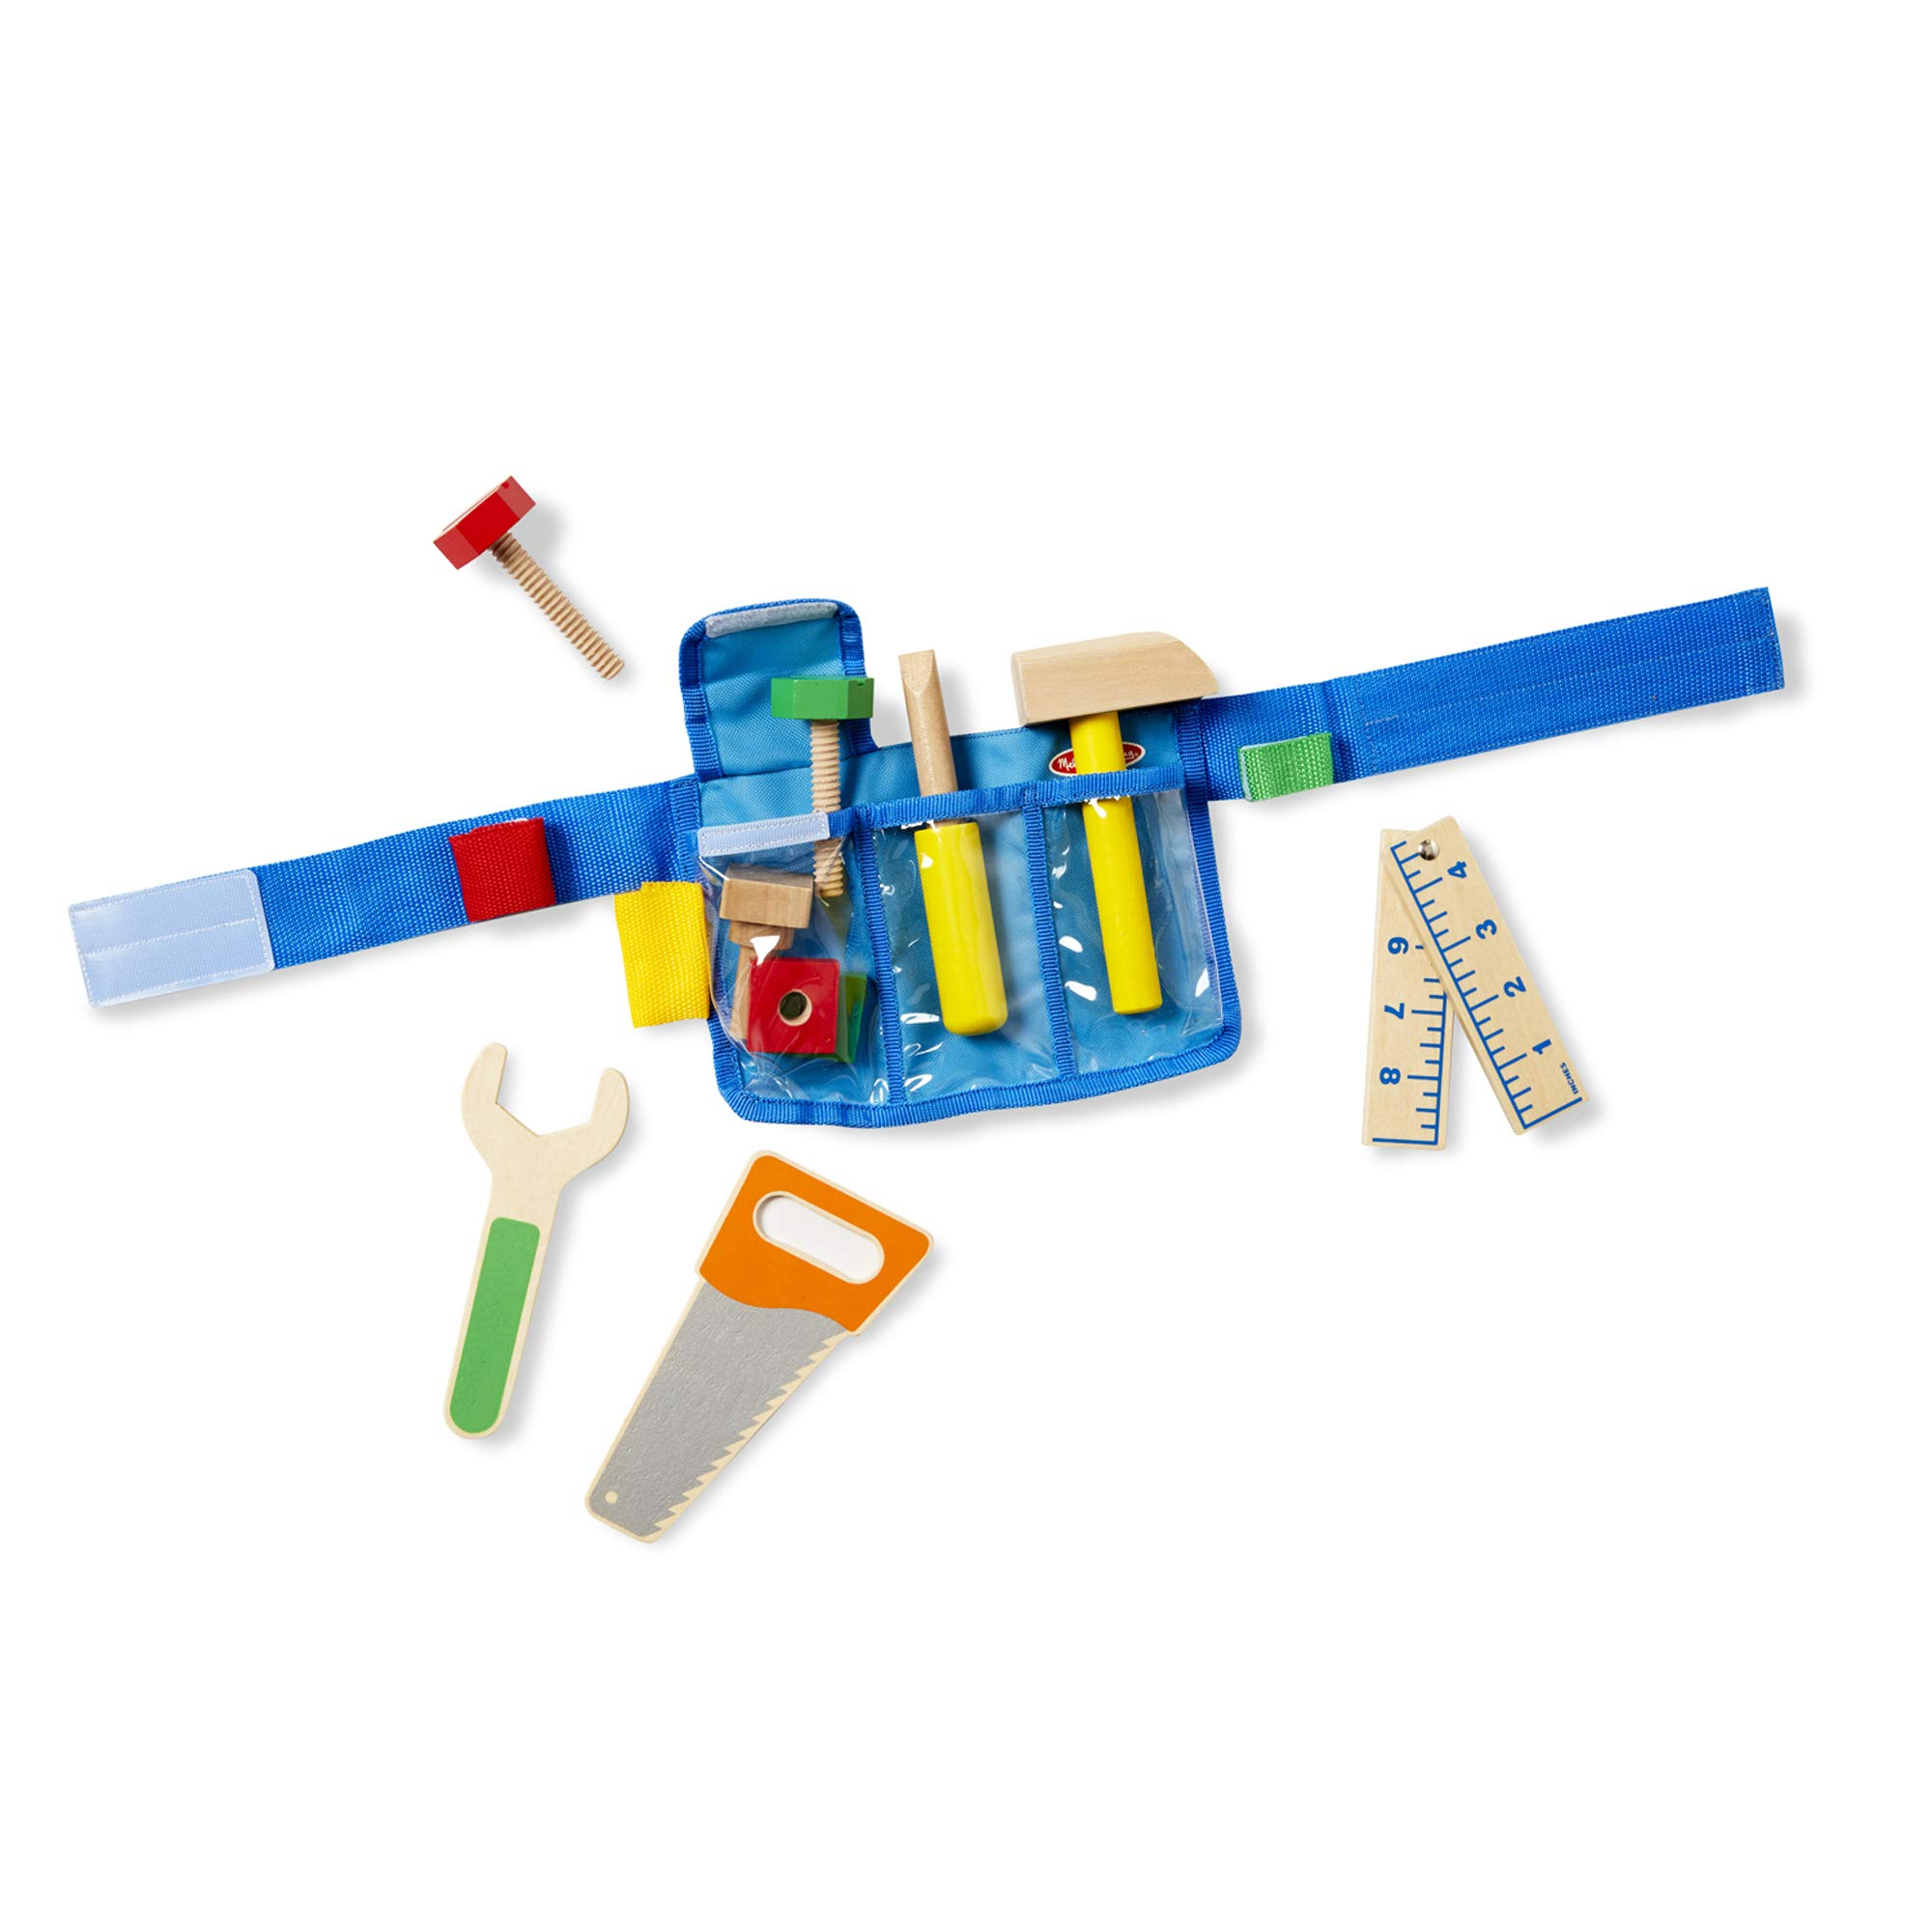 Melissa & Doug Deluxe Tool Belt Set (5 Wooden Toy Tools, 8 Building Pieces, Great Gift for Girls and Boys - Best for 3, 4, 5, 6, and 7 Year Olds) by Melissa & Doug